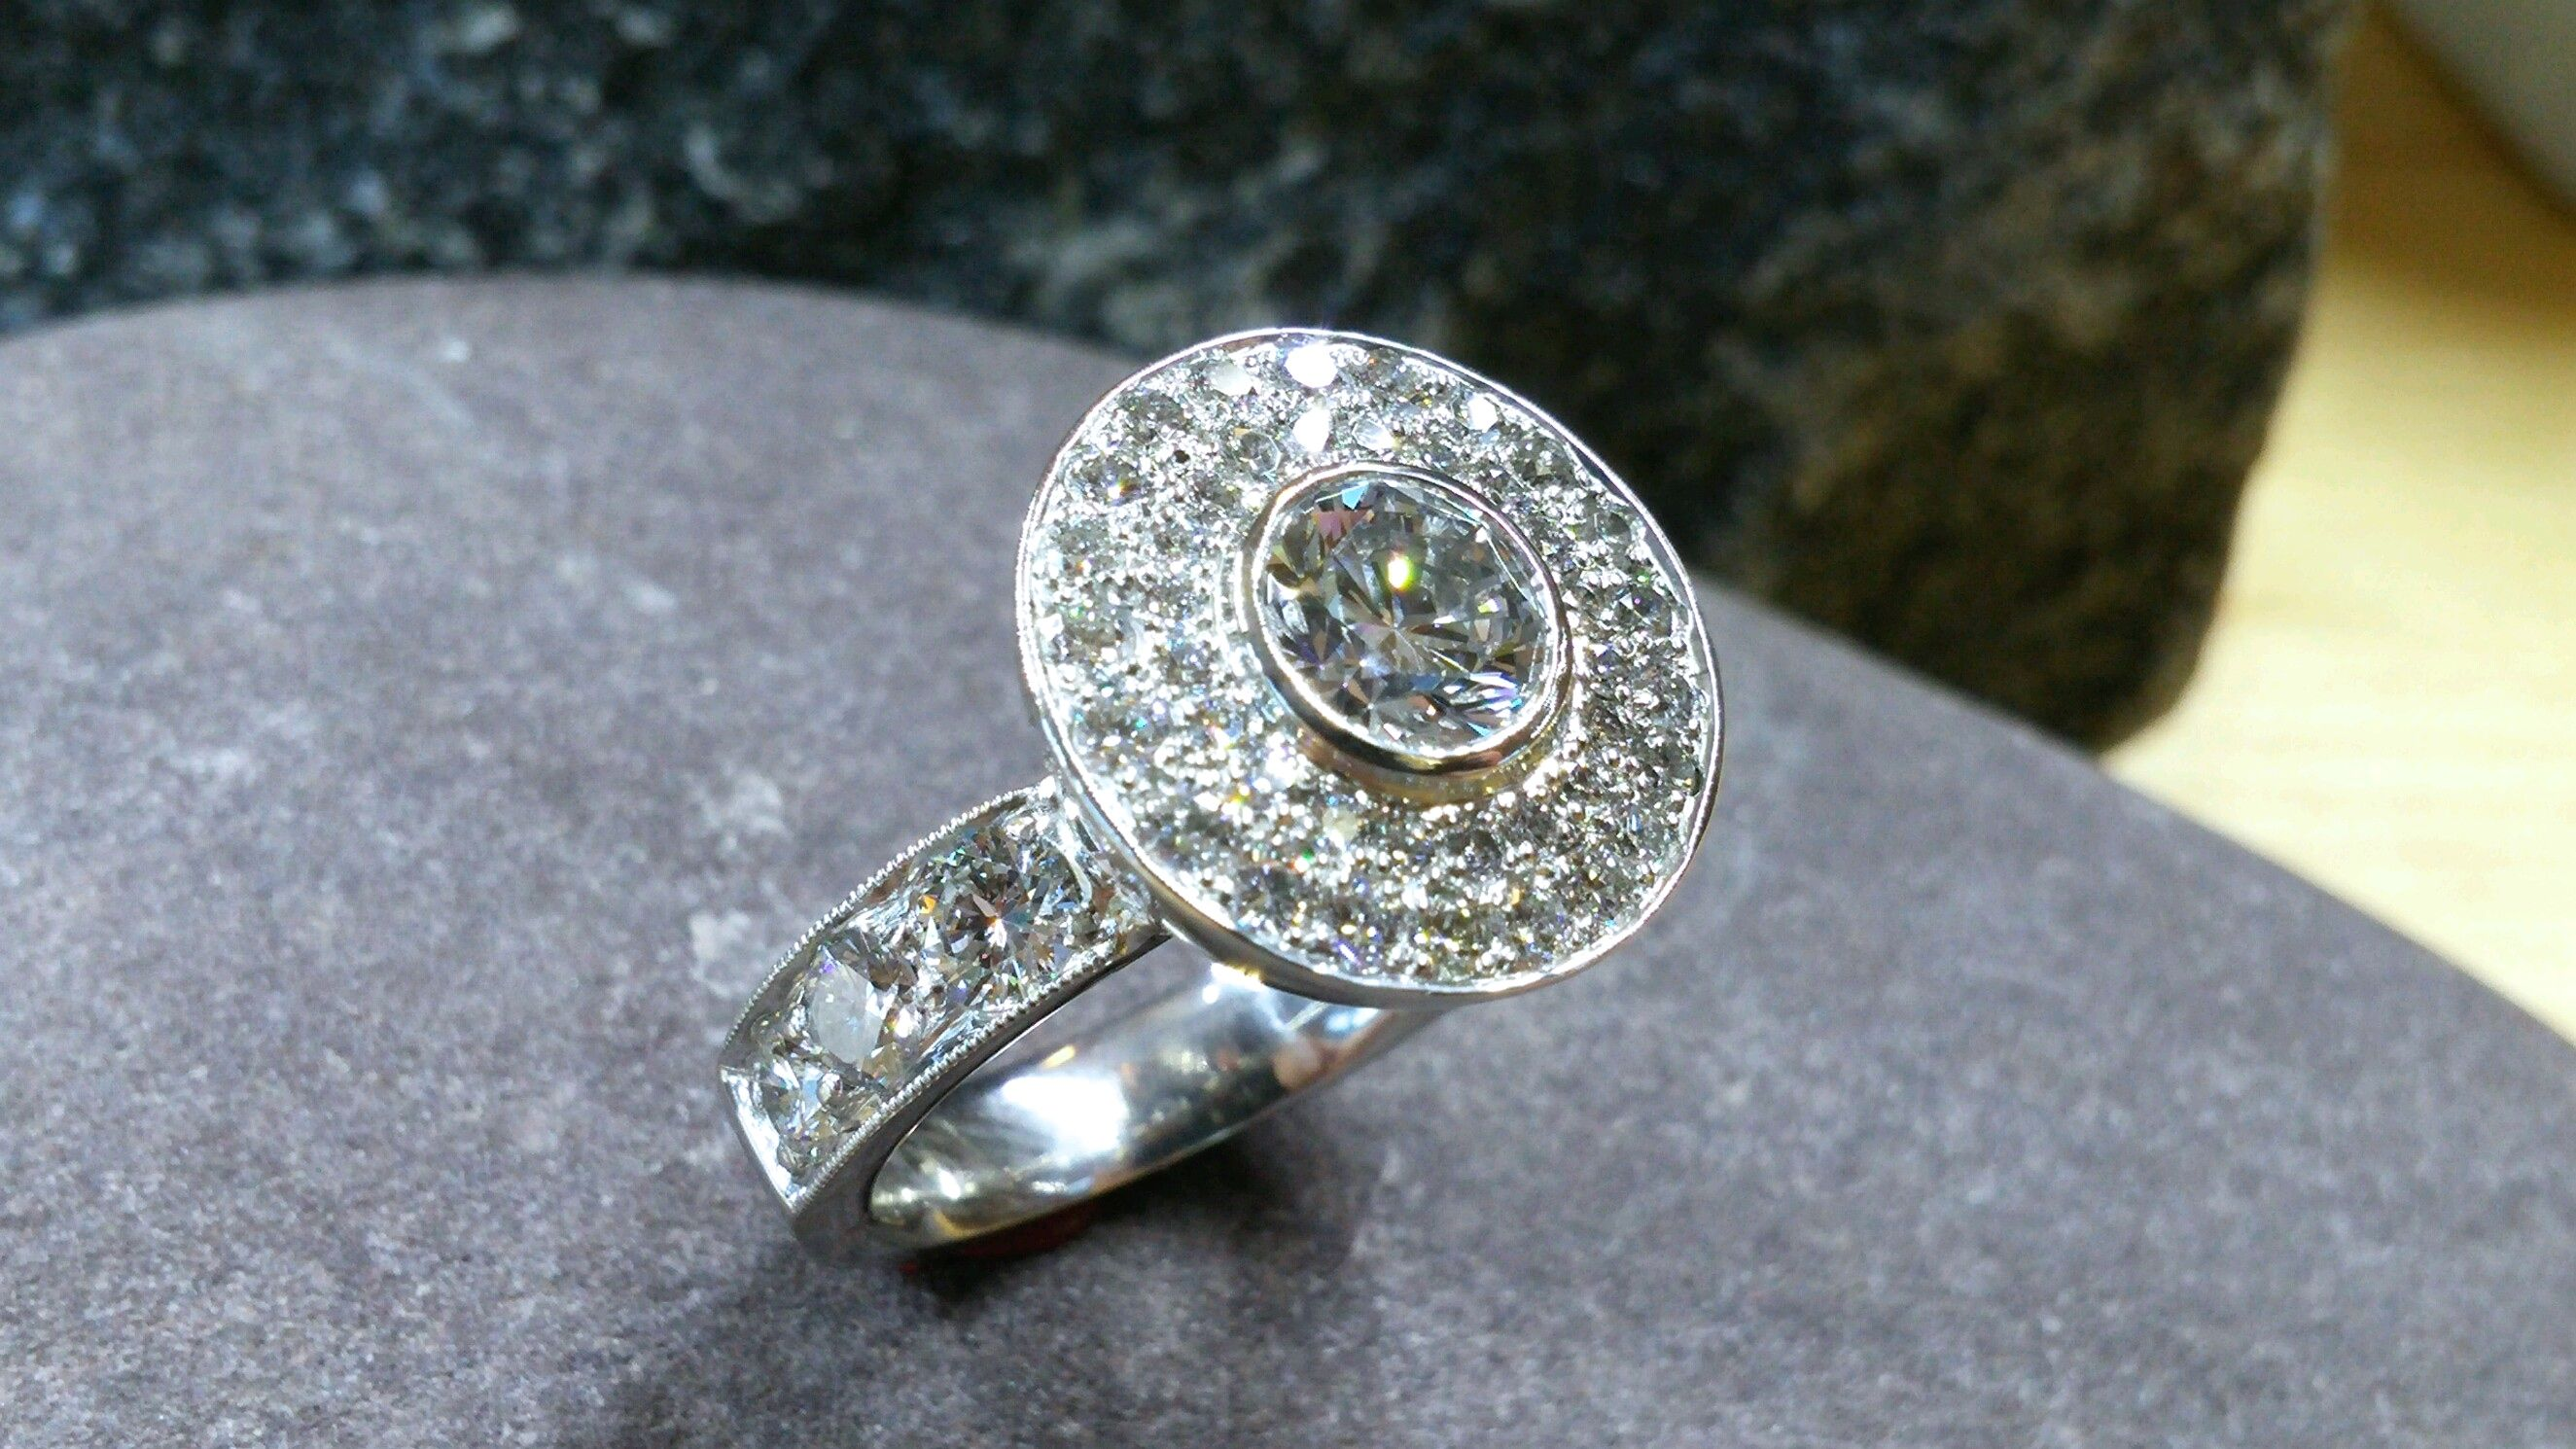 Double halo around this beautiful diamond!  This is a hand fabricated ring made by Stonehaven Jewelry.